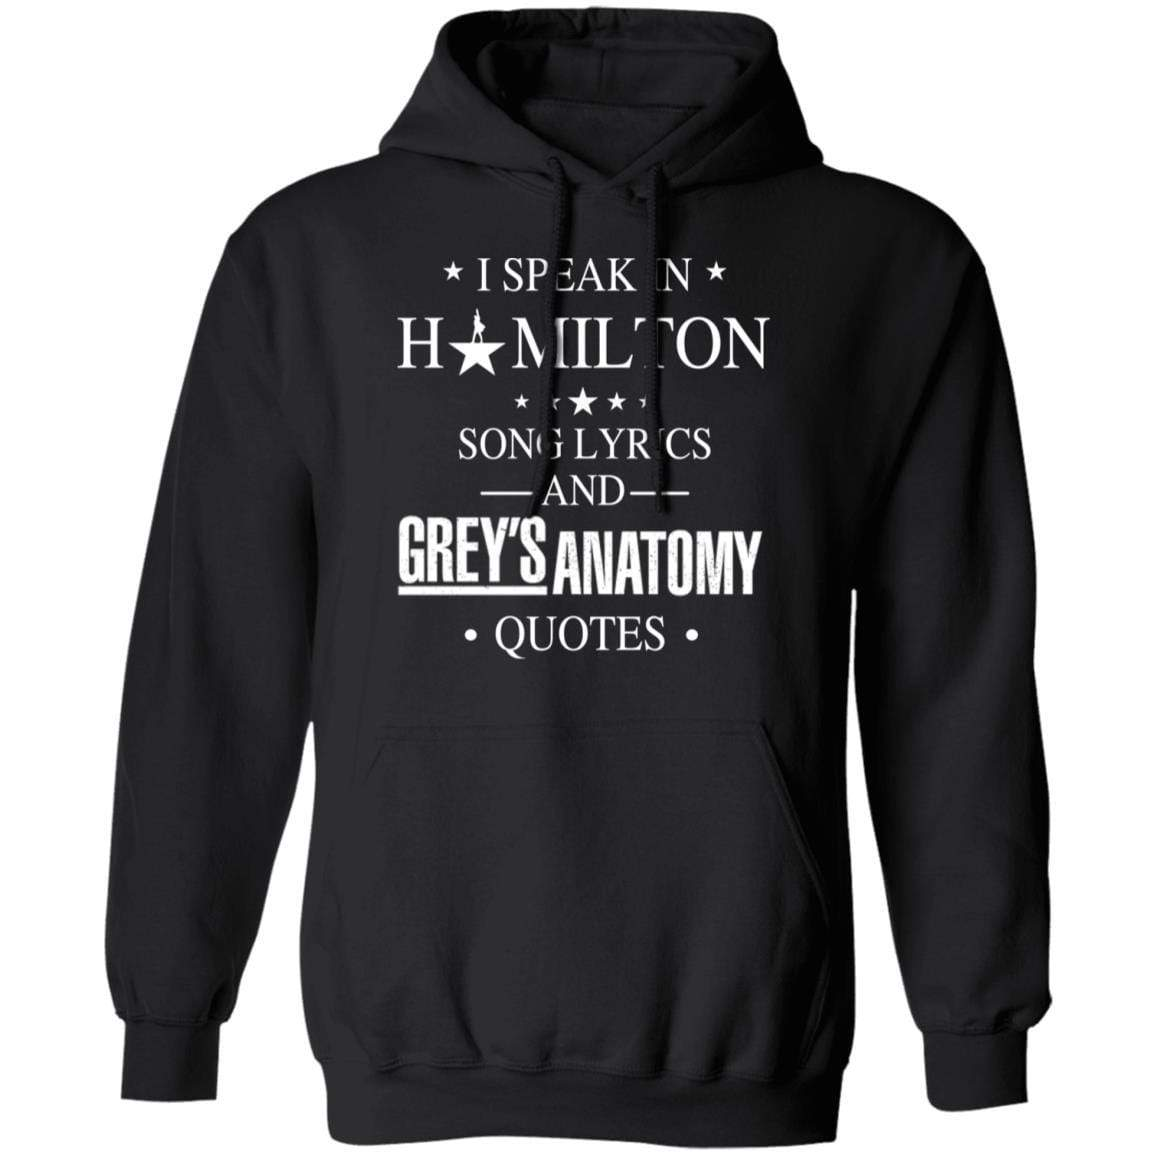 I Speak In Hamilton Song Lyrics And Grey's Anatomy Quotes T-Shirts, Hoodies 541-4740-88445037-23087 - Tee Ript